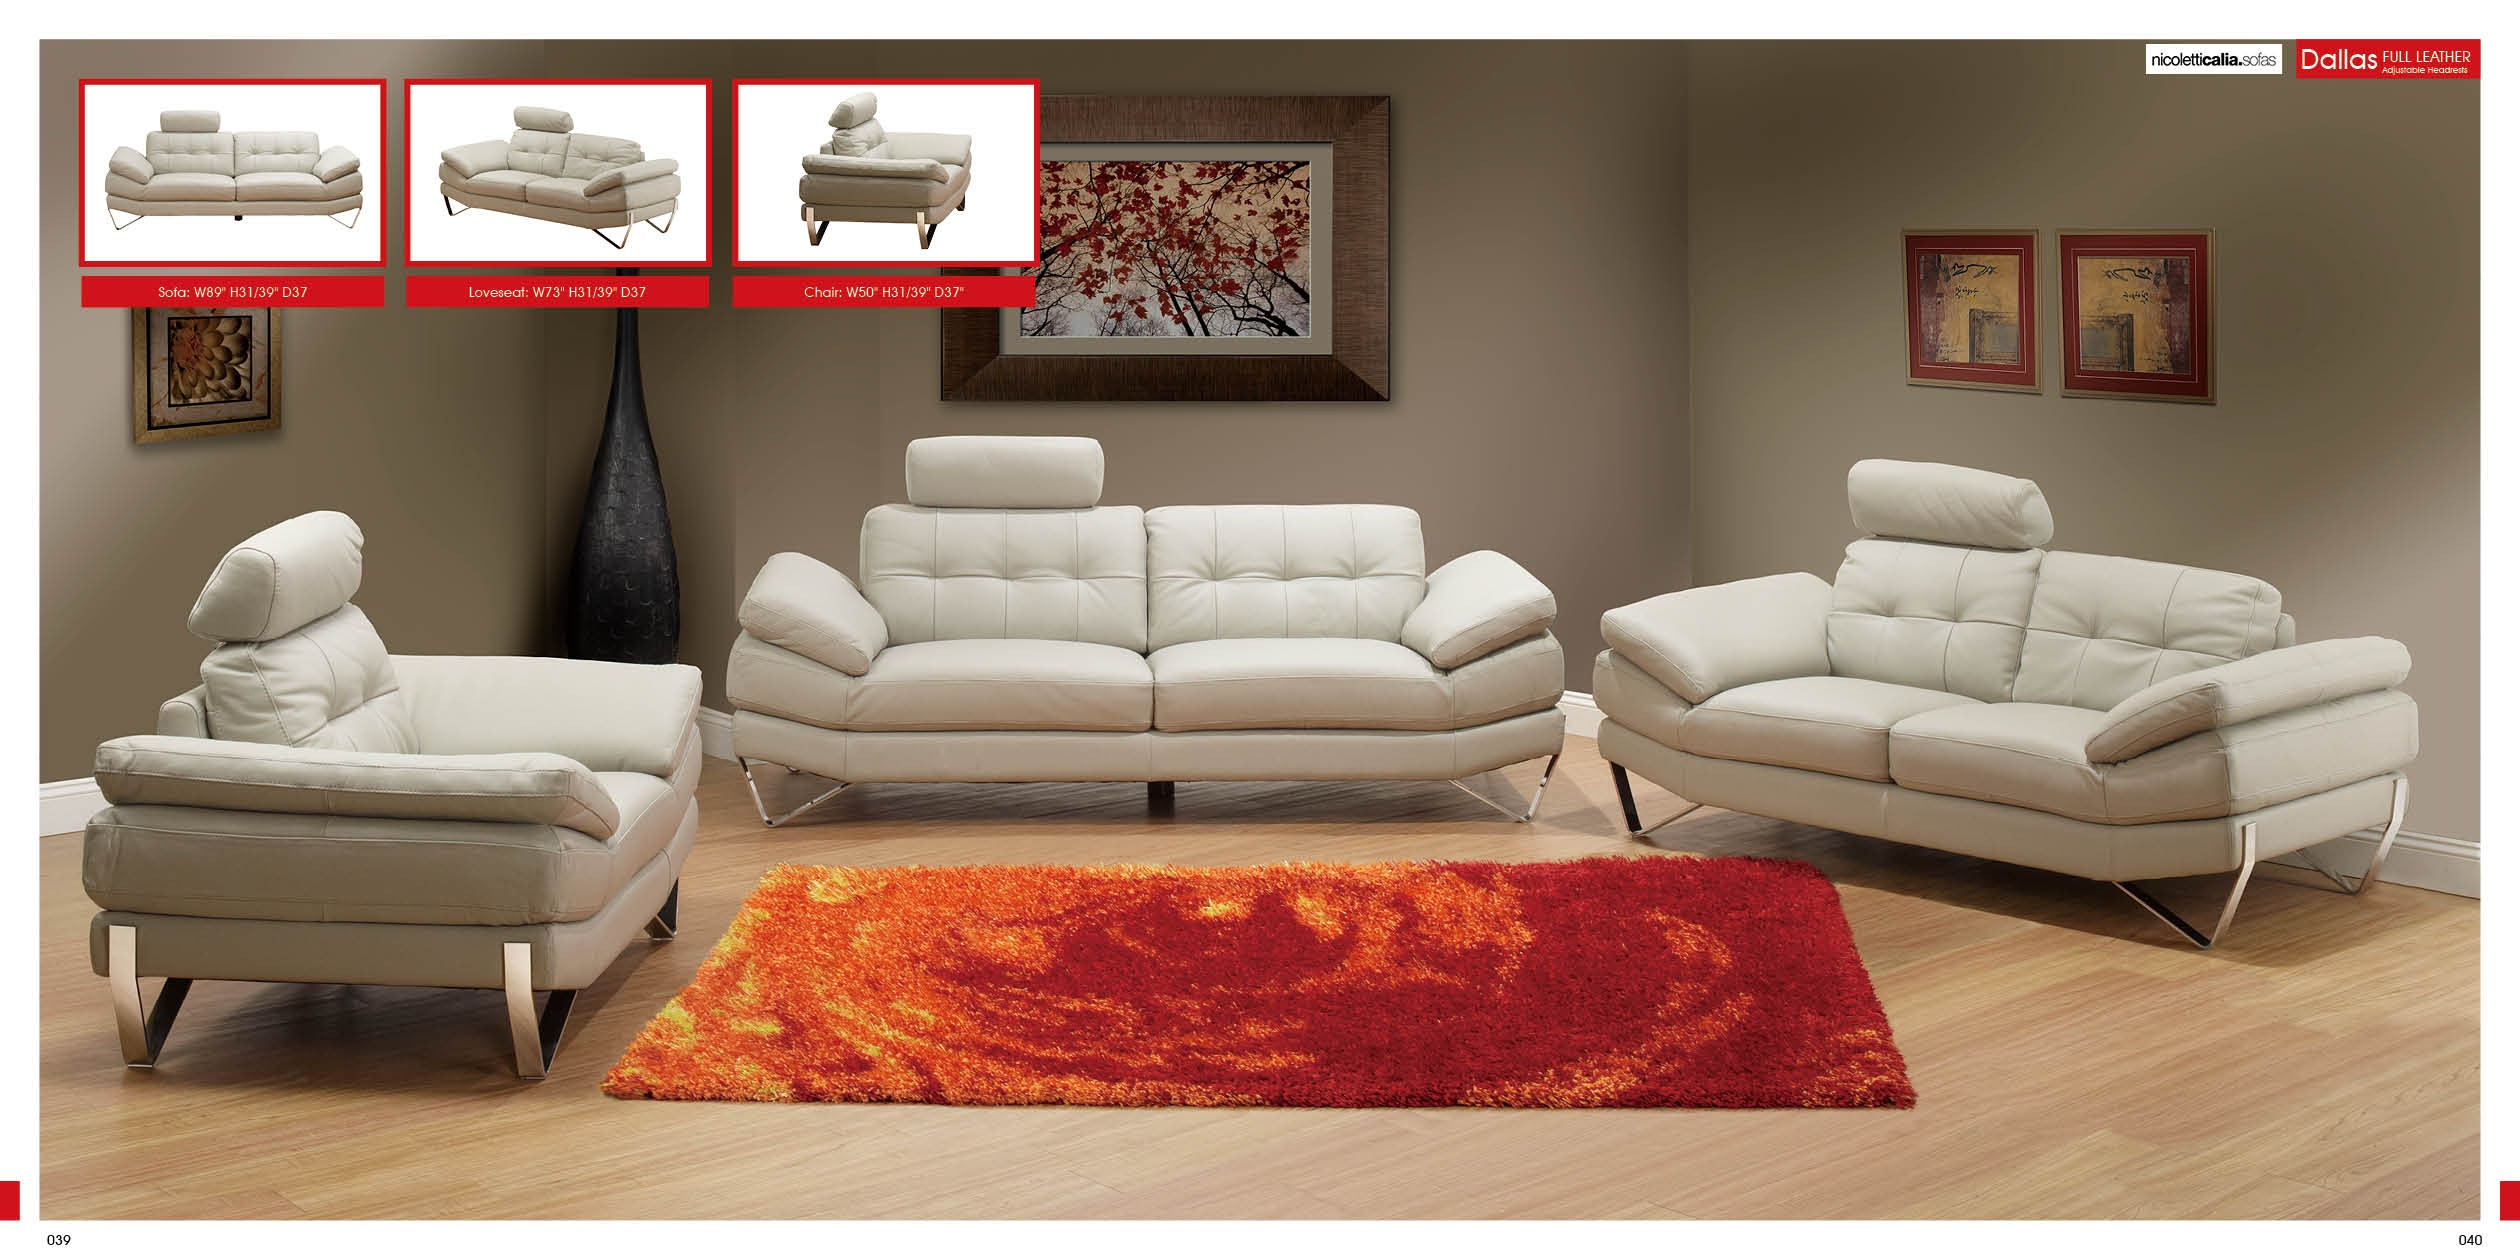 Dallas Sofa Bed By ESF buy from NOVA interiors contemporary